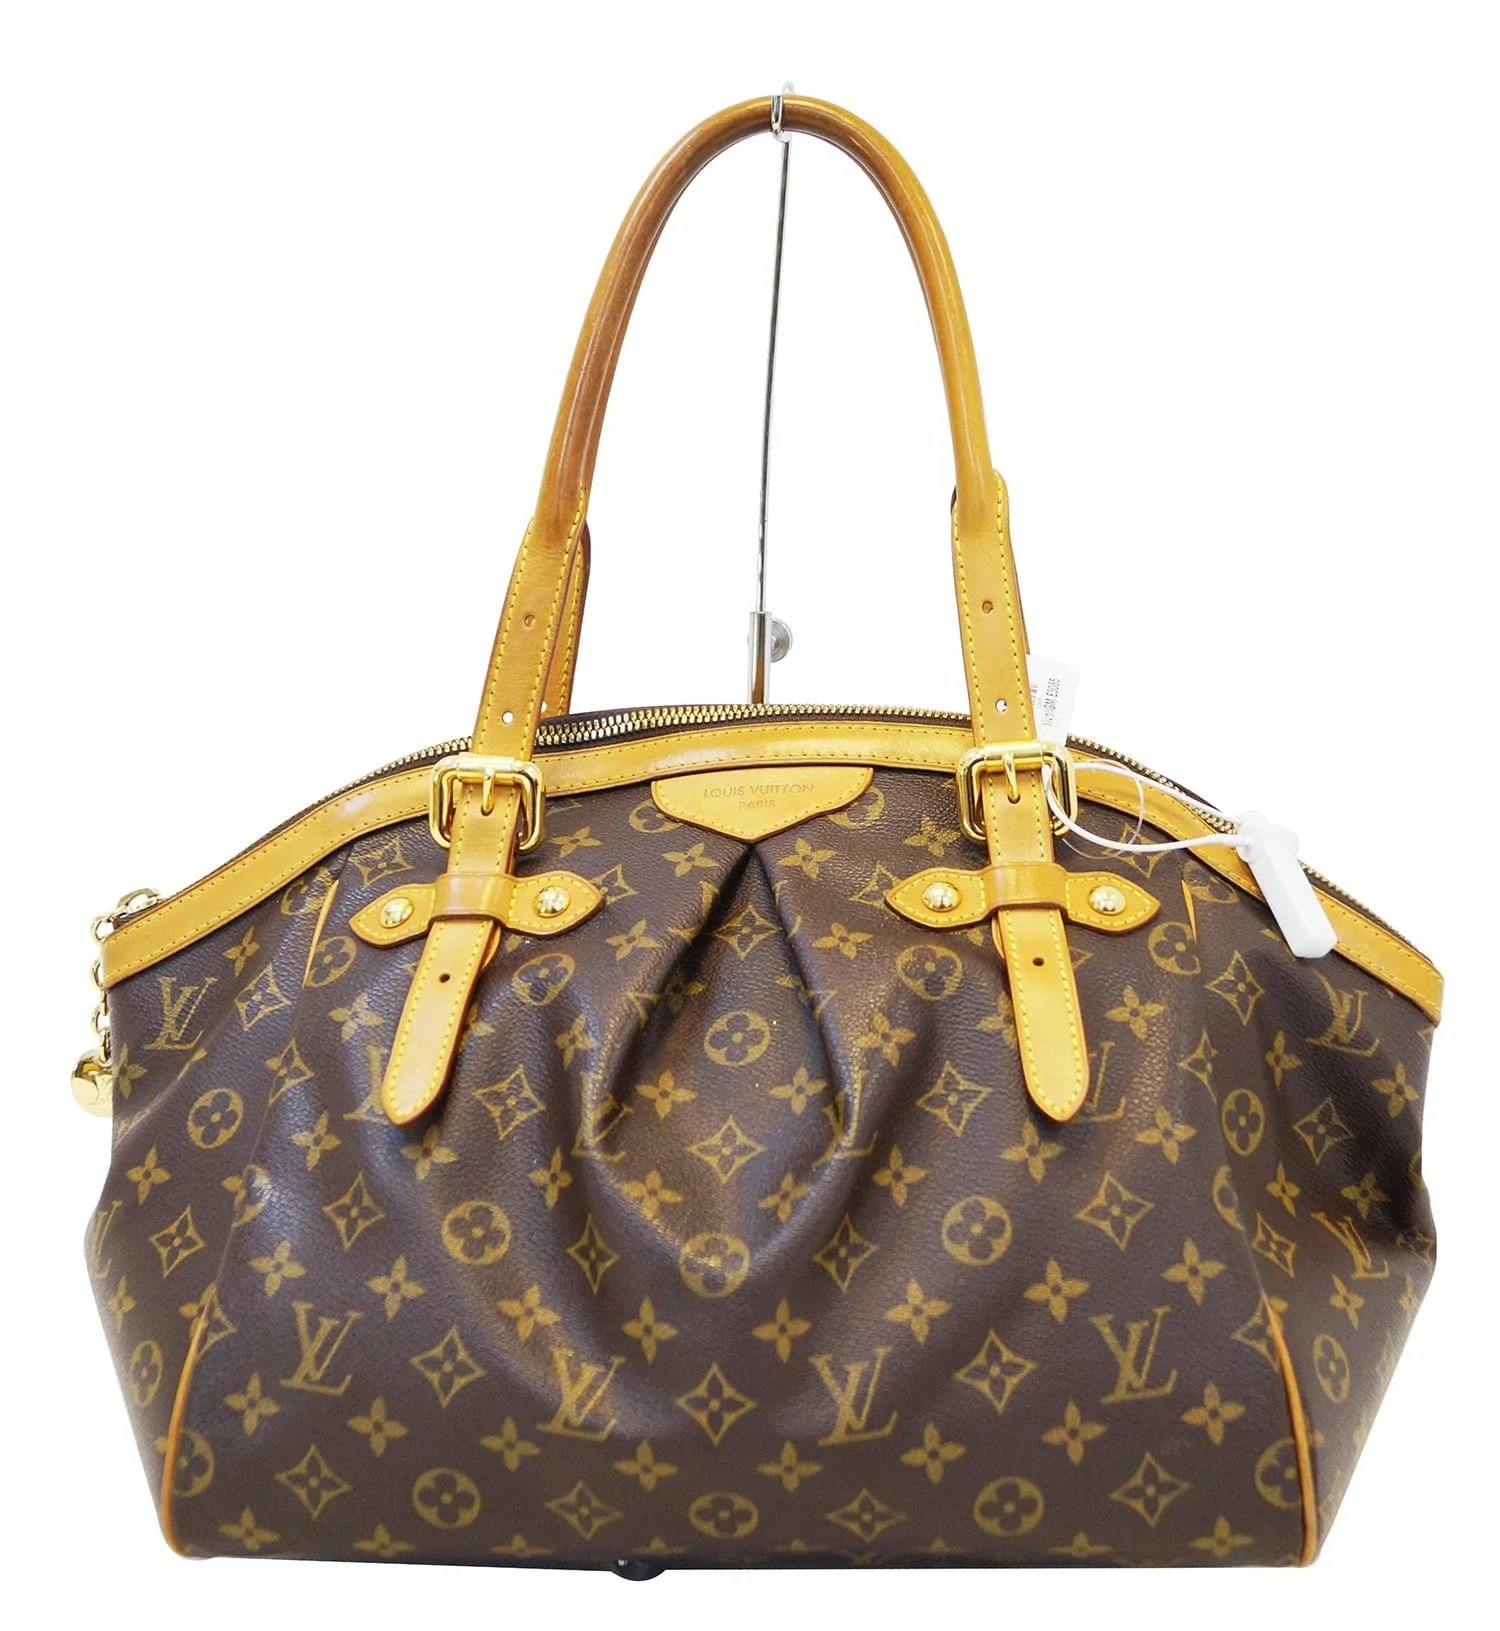 Louis Vuitton Tivoli Vs Palermo Authentic Louis Vuitton Monogram Tivoli Gm Brown Tote Bag E3085